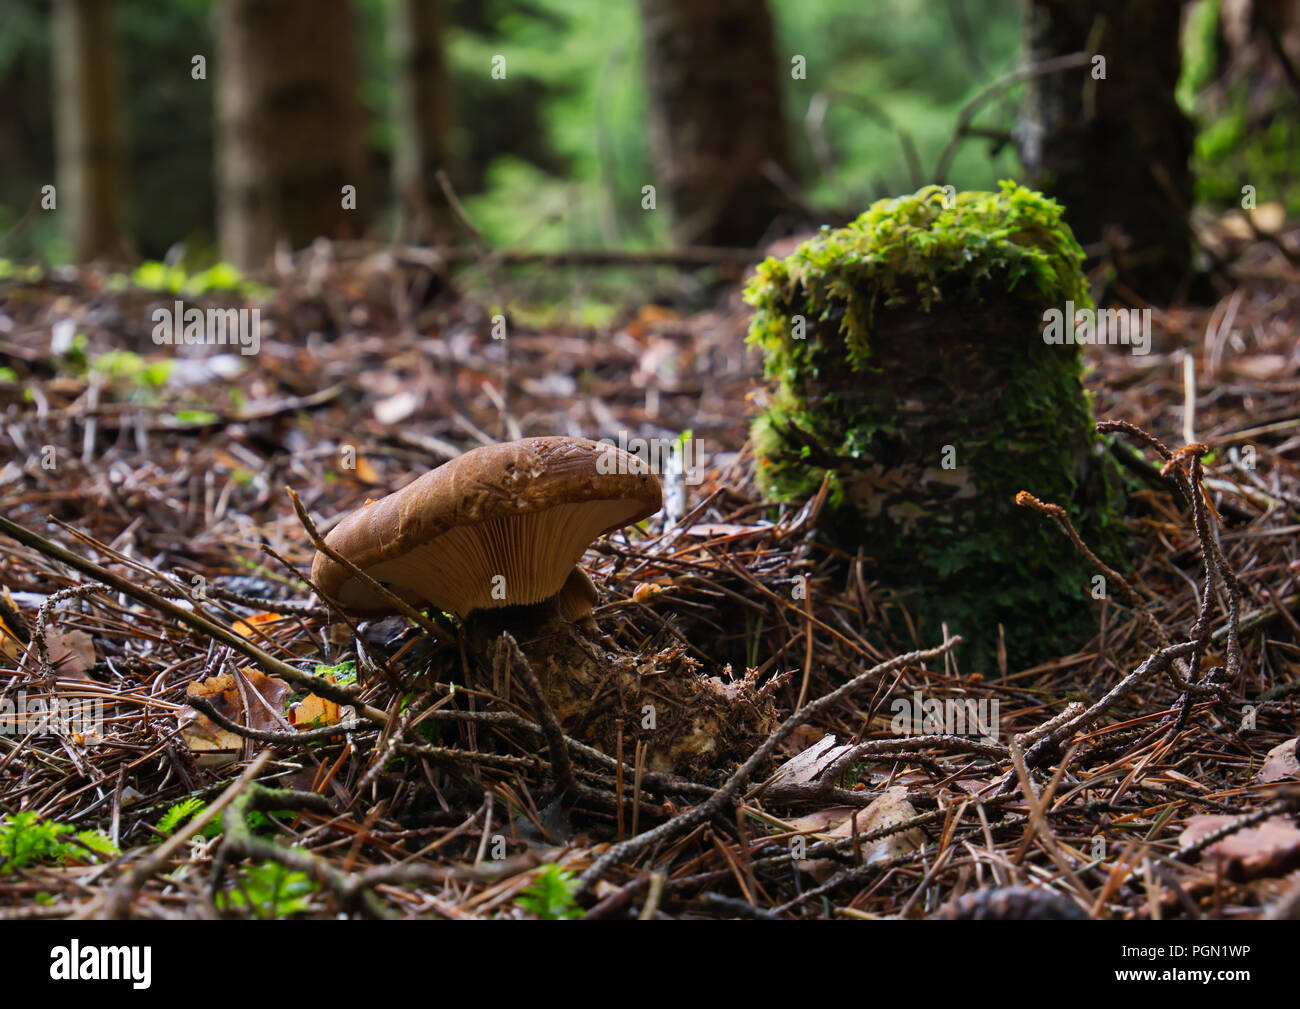 A brown mushroom stands in the woods beside an old mossy tree stump against blurred background - Stock Image